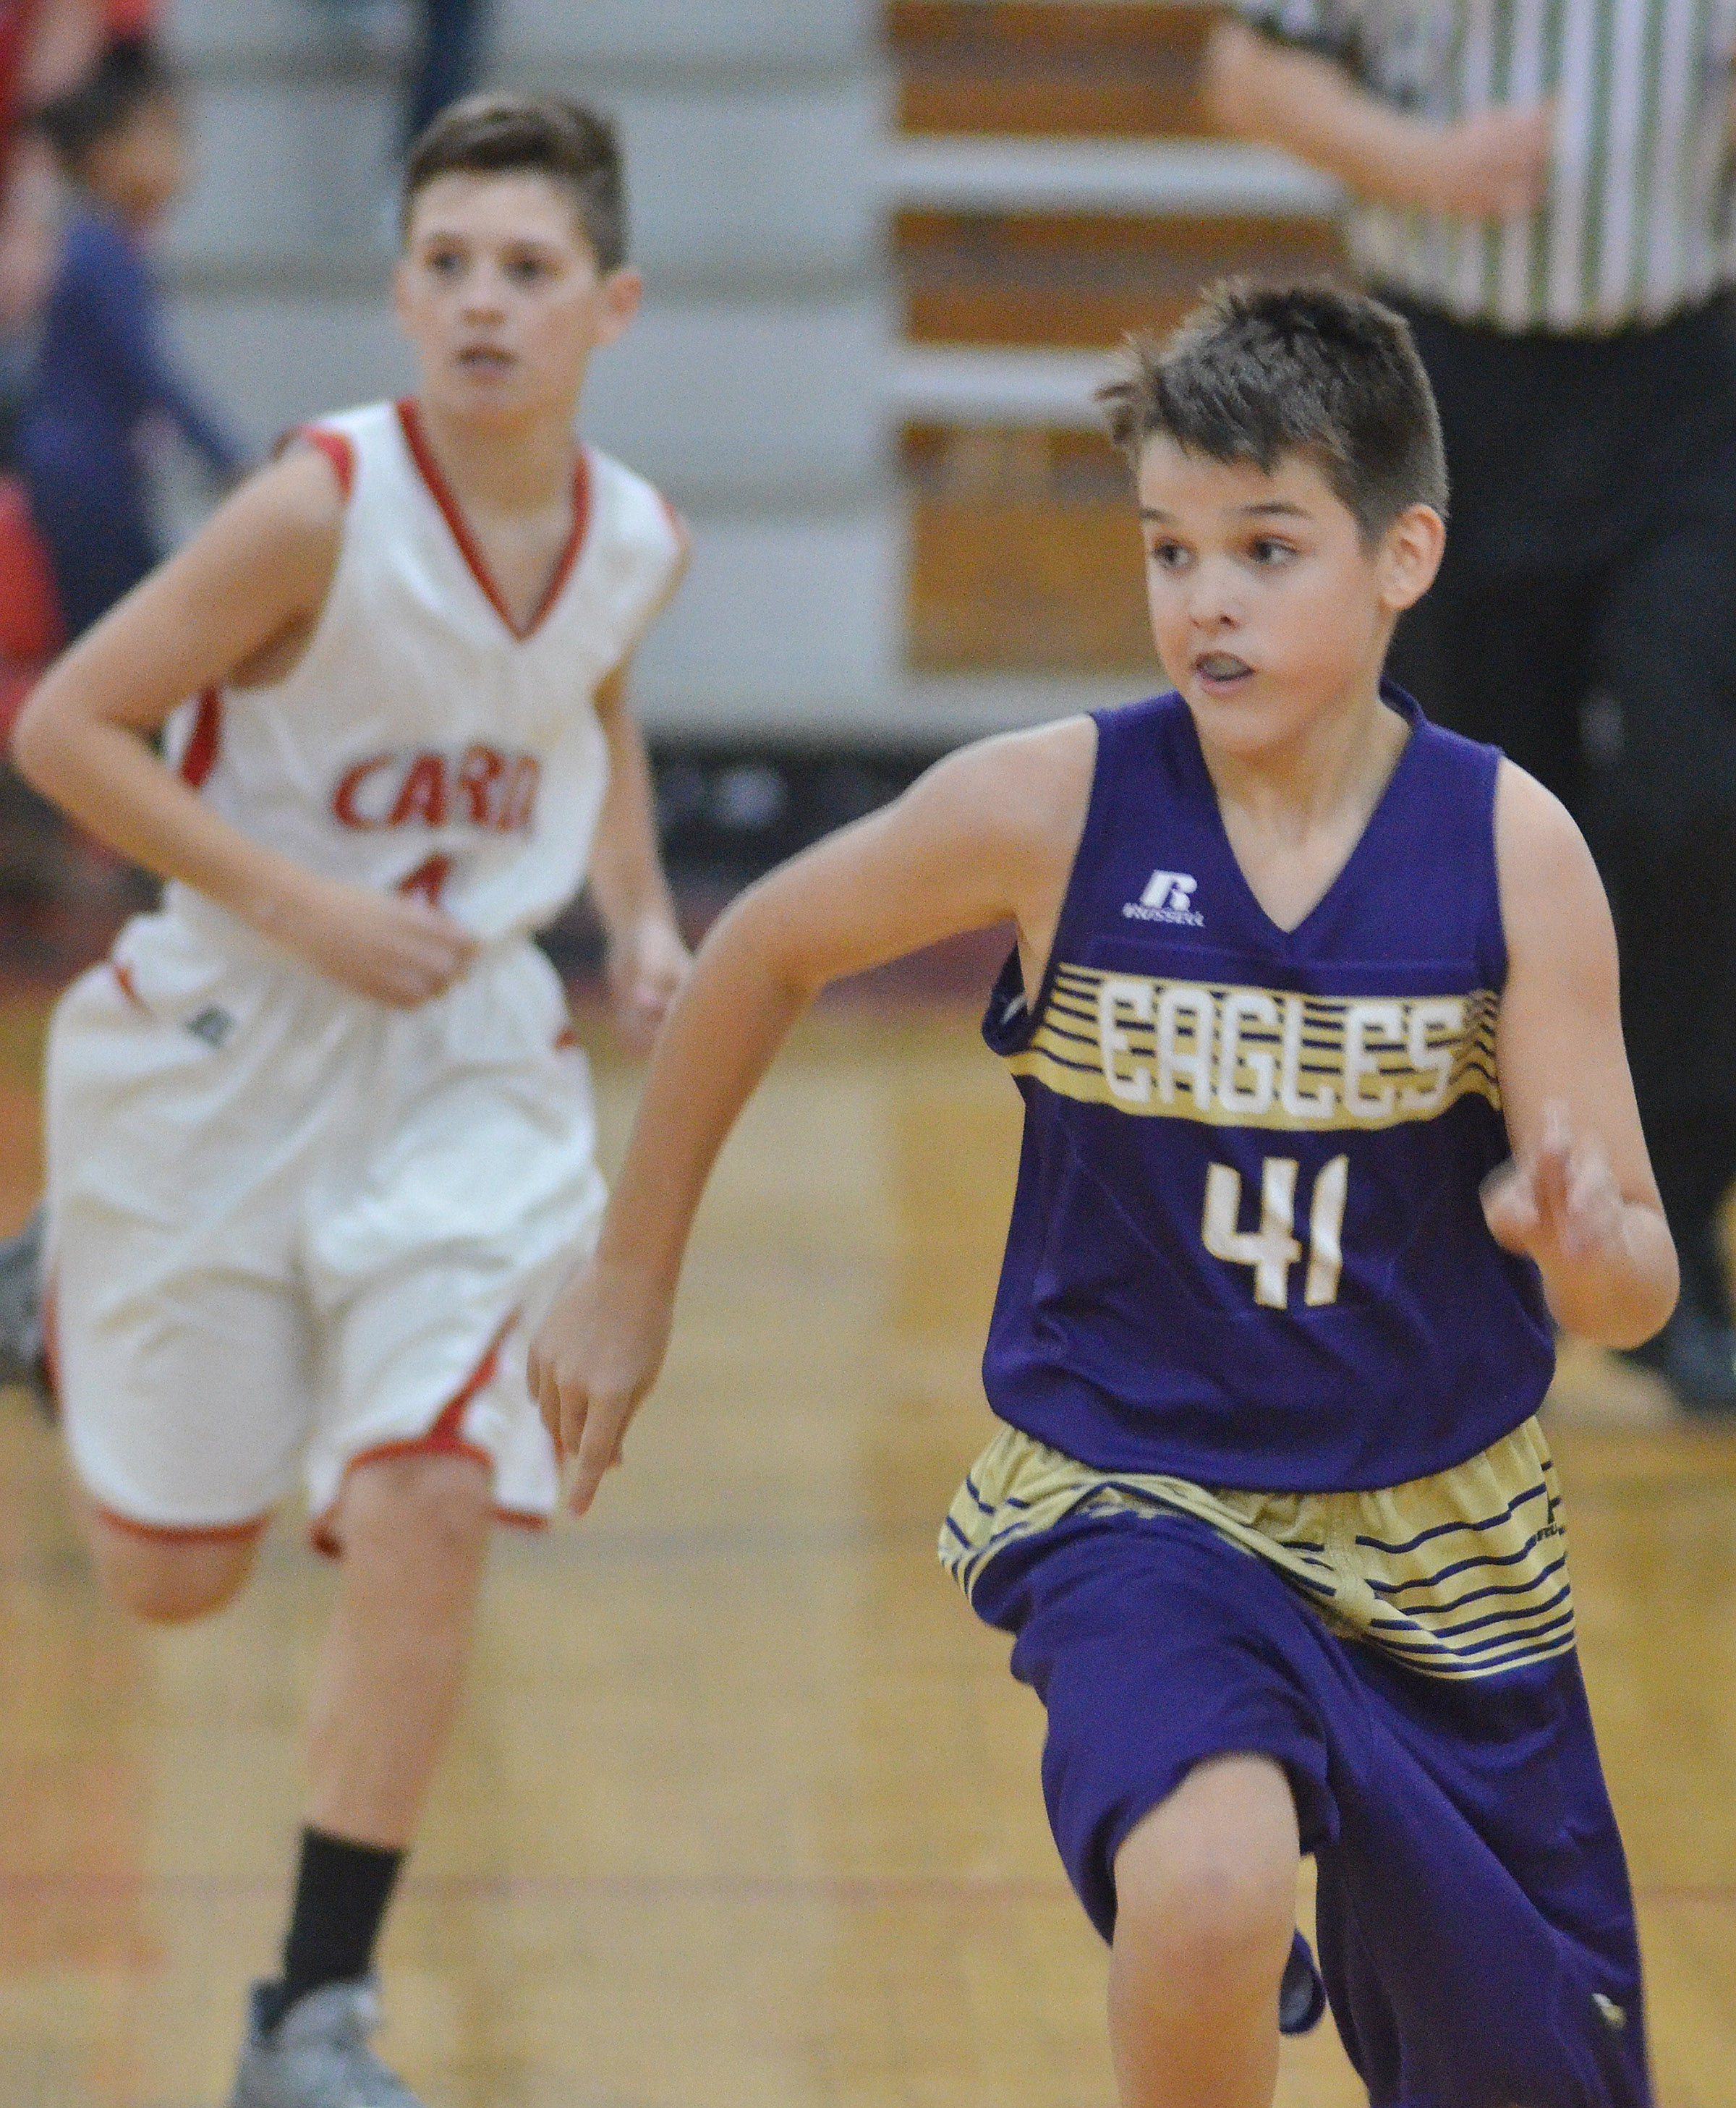 CMS sixth-grader Kaden Bloyd runs down the court.